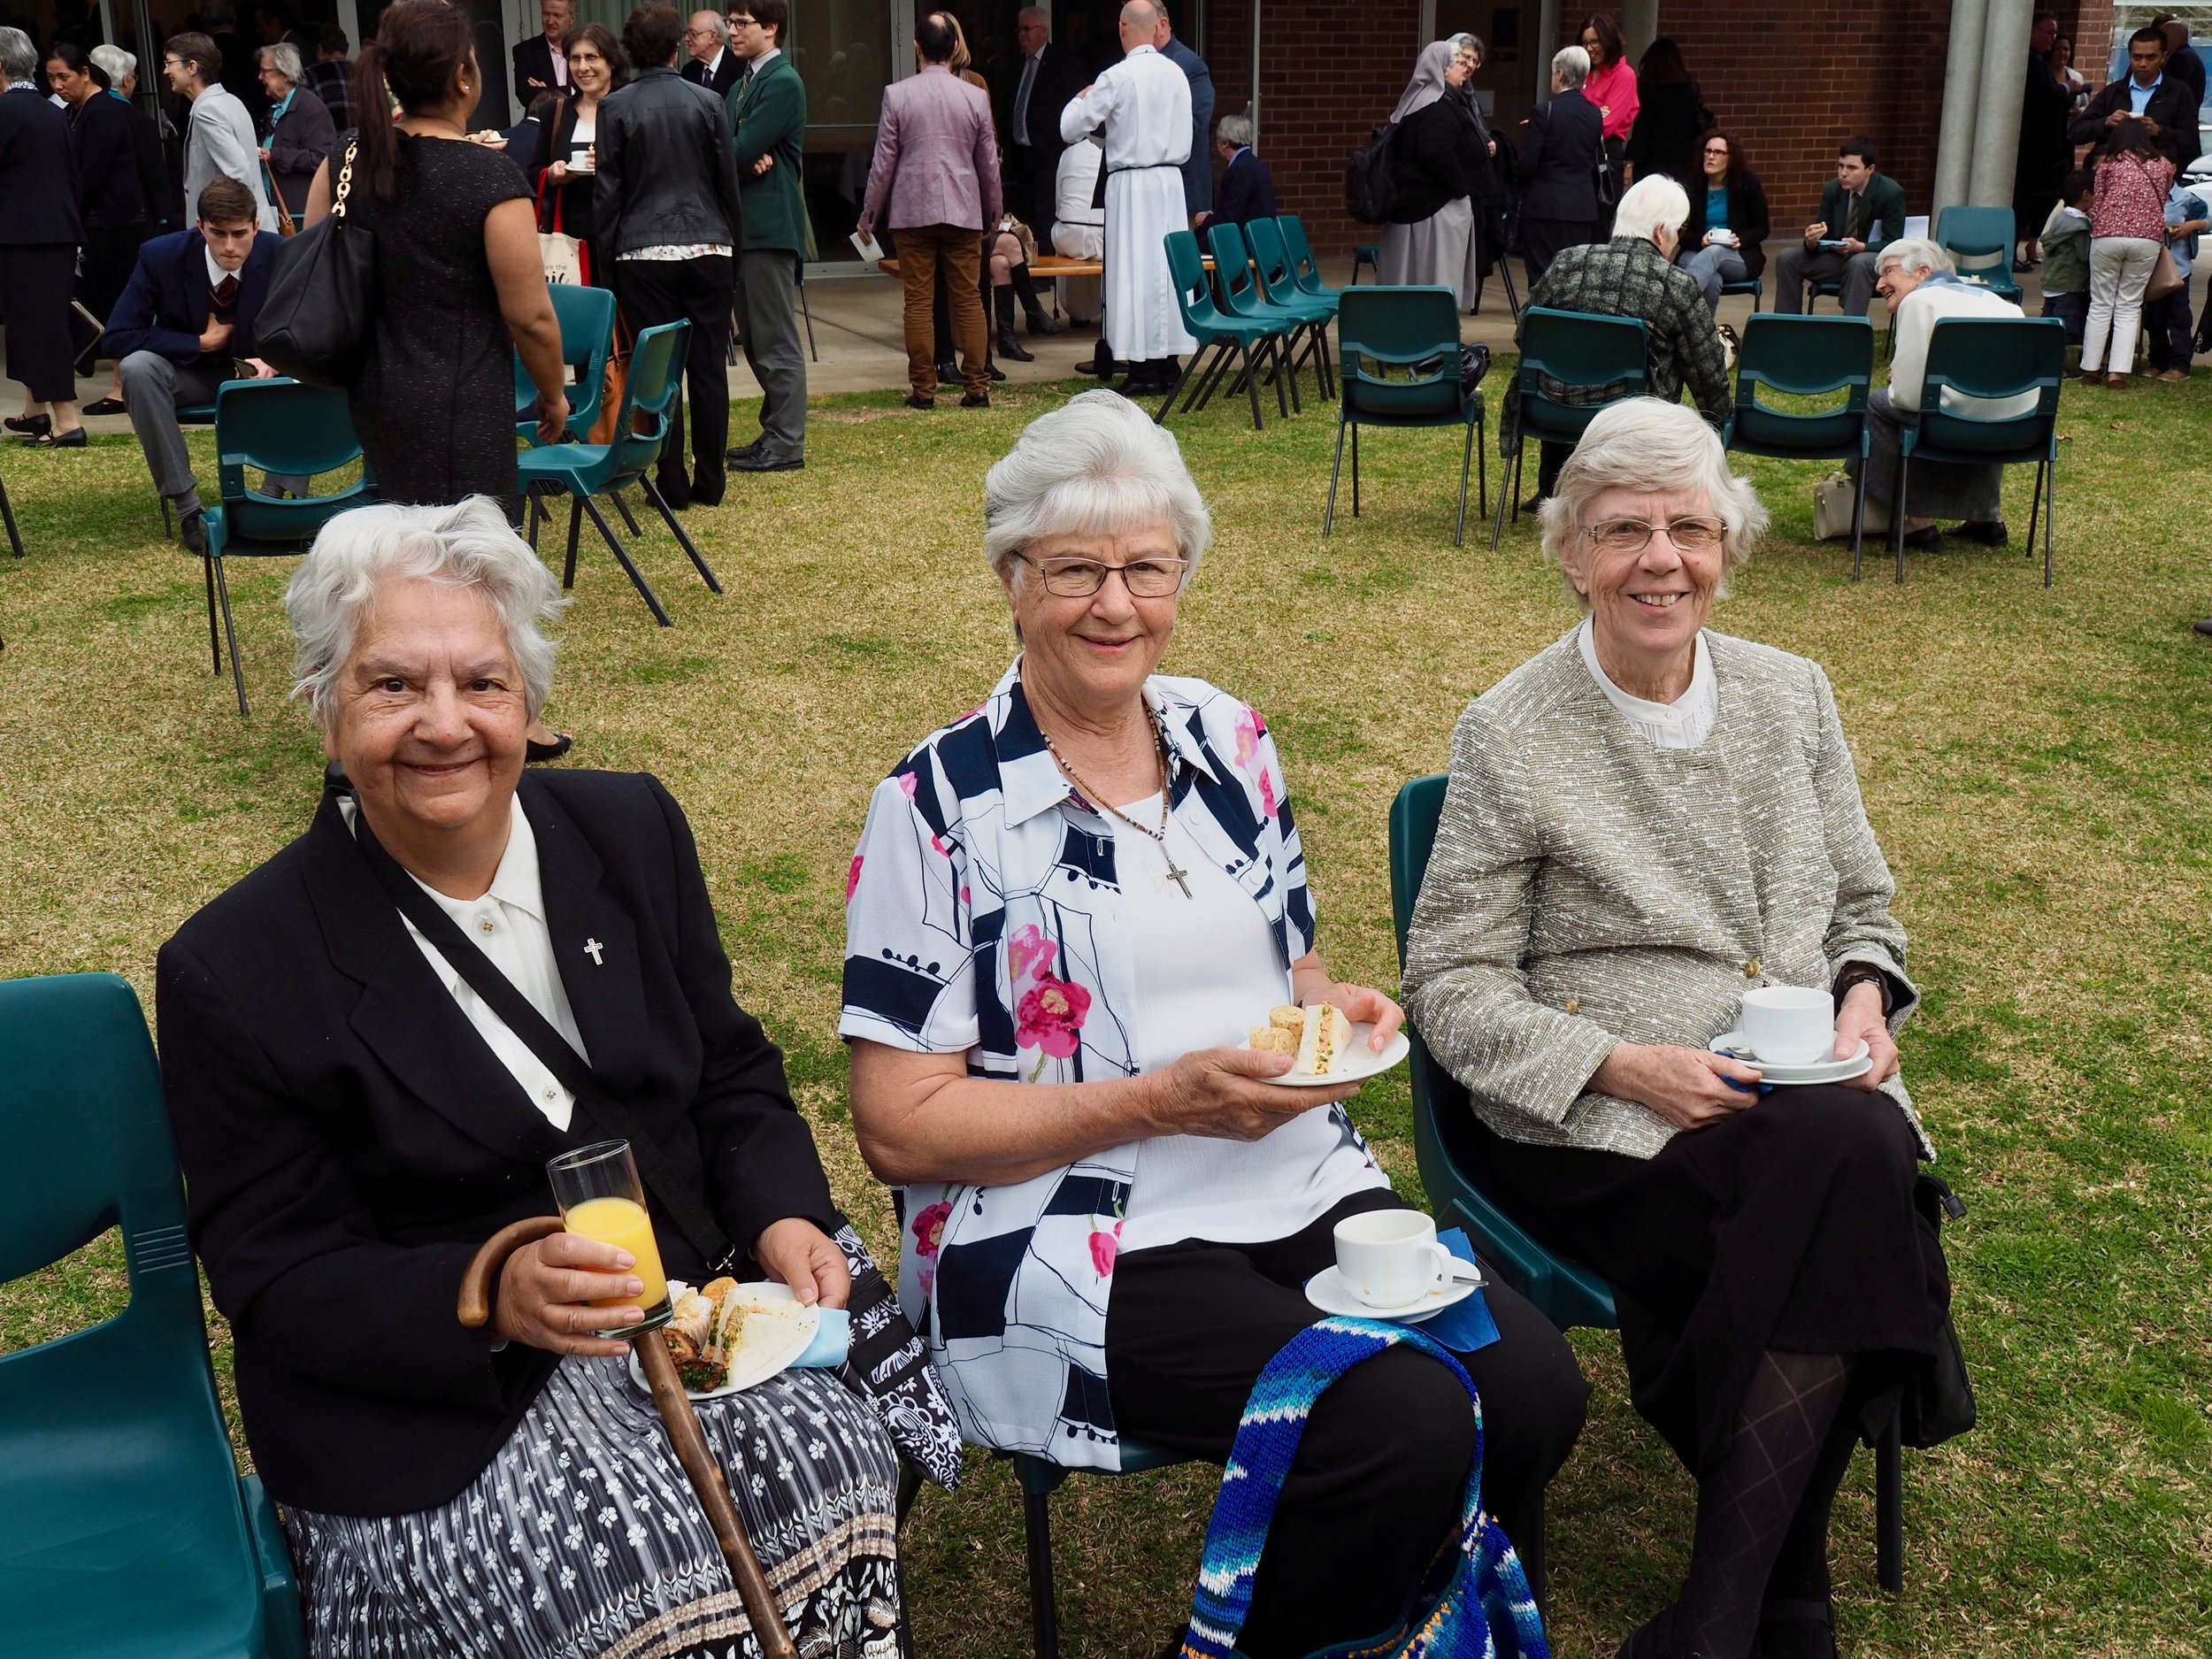 Bicentenary Mass Sydney 12 Aug 2017 Photos by Paul Harris 00133.jpg